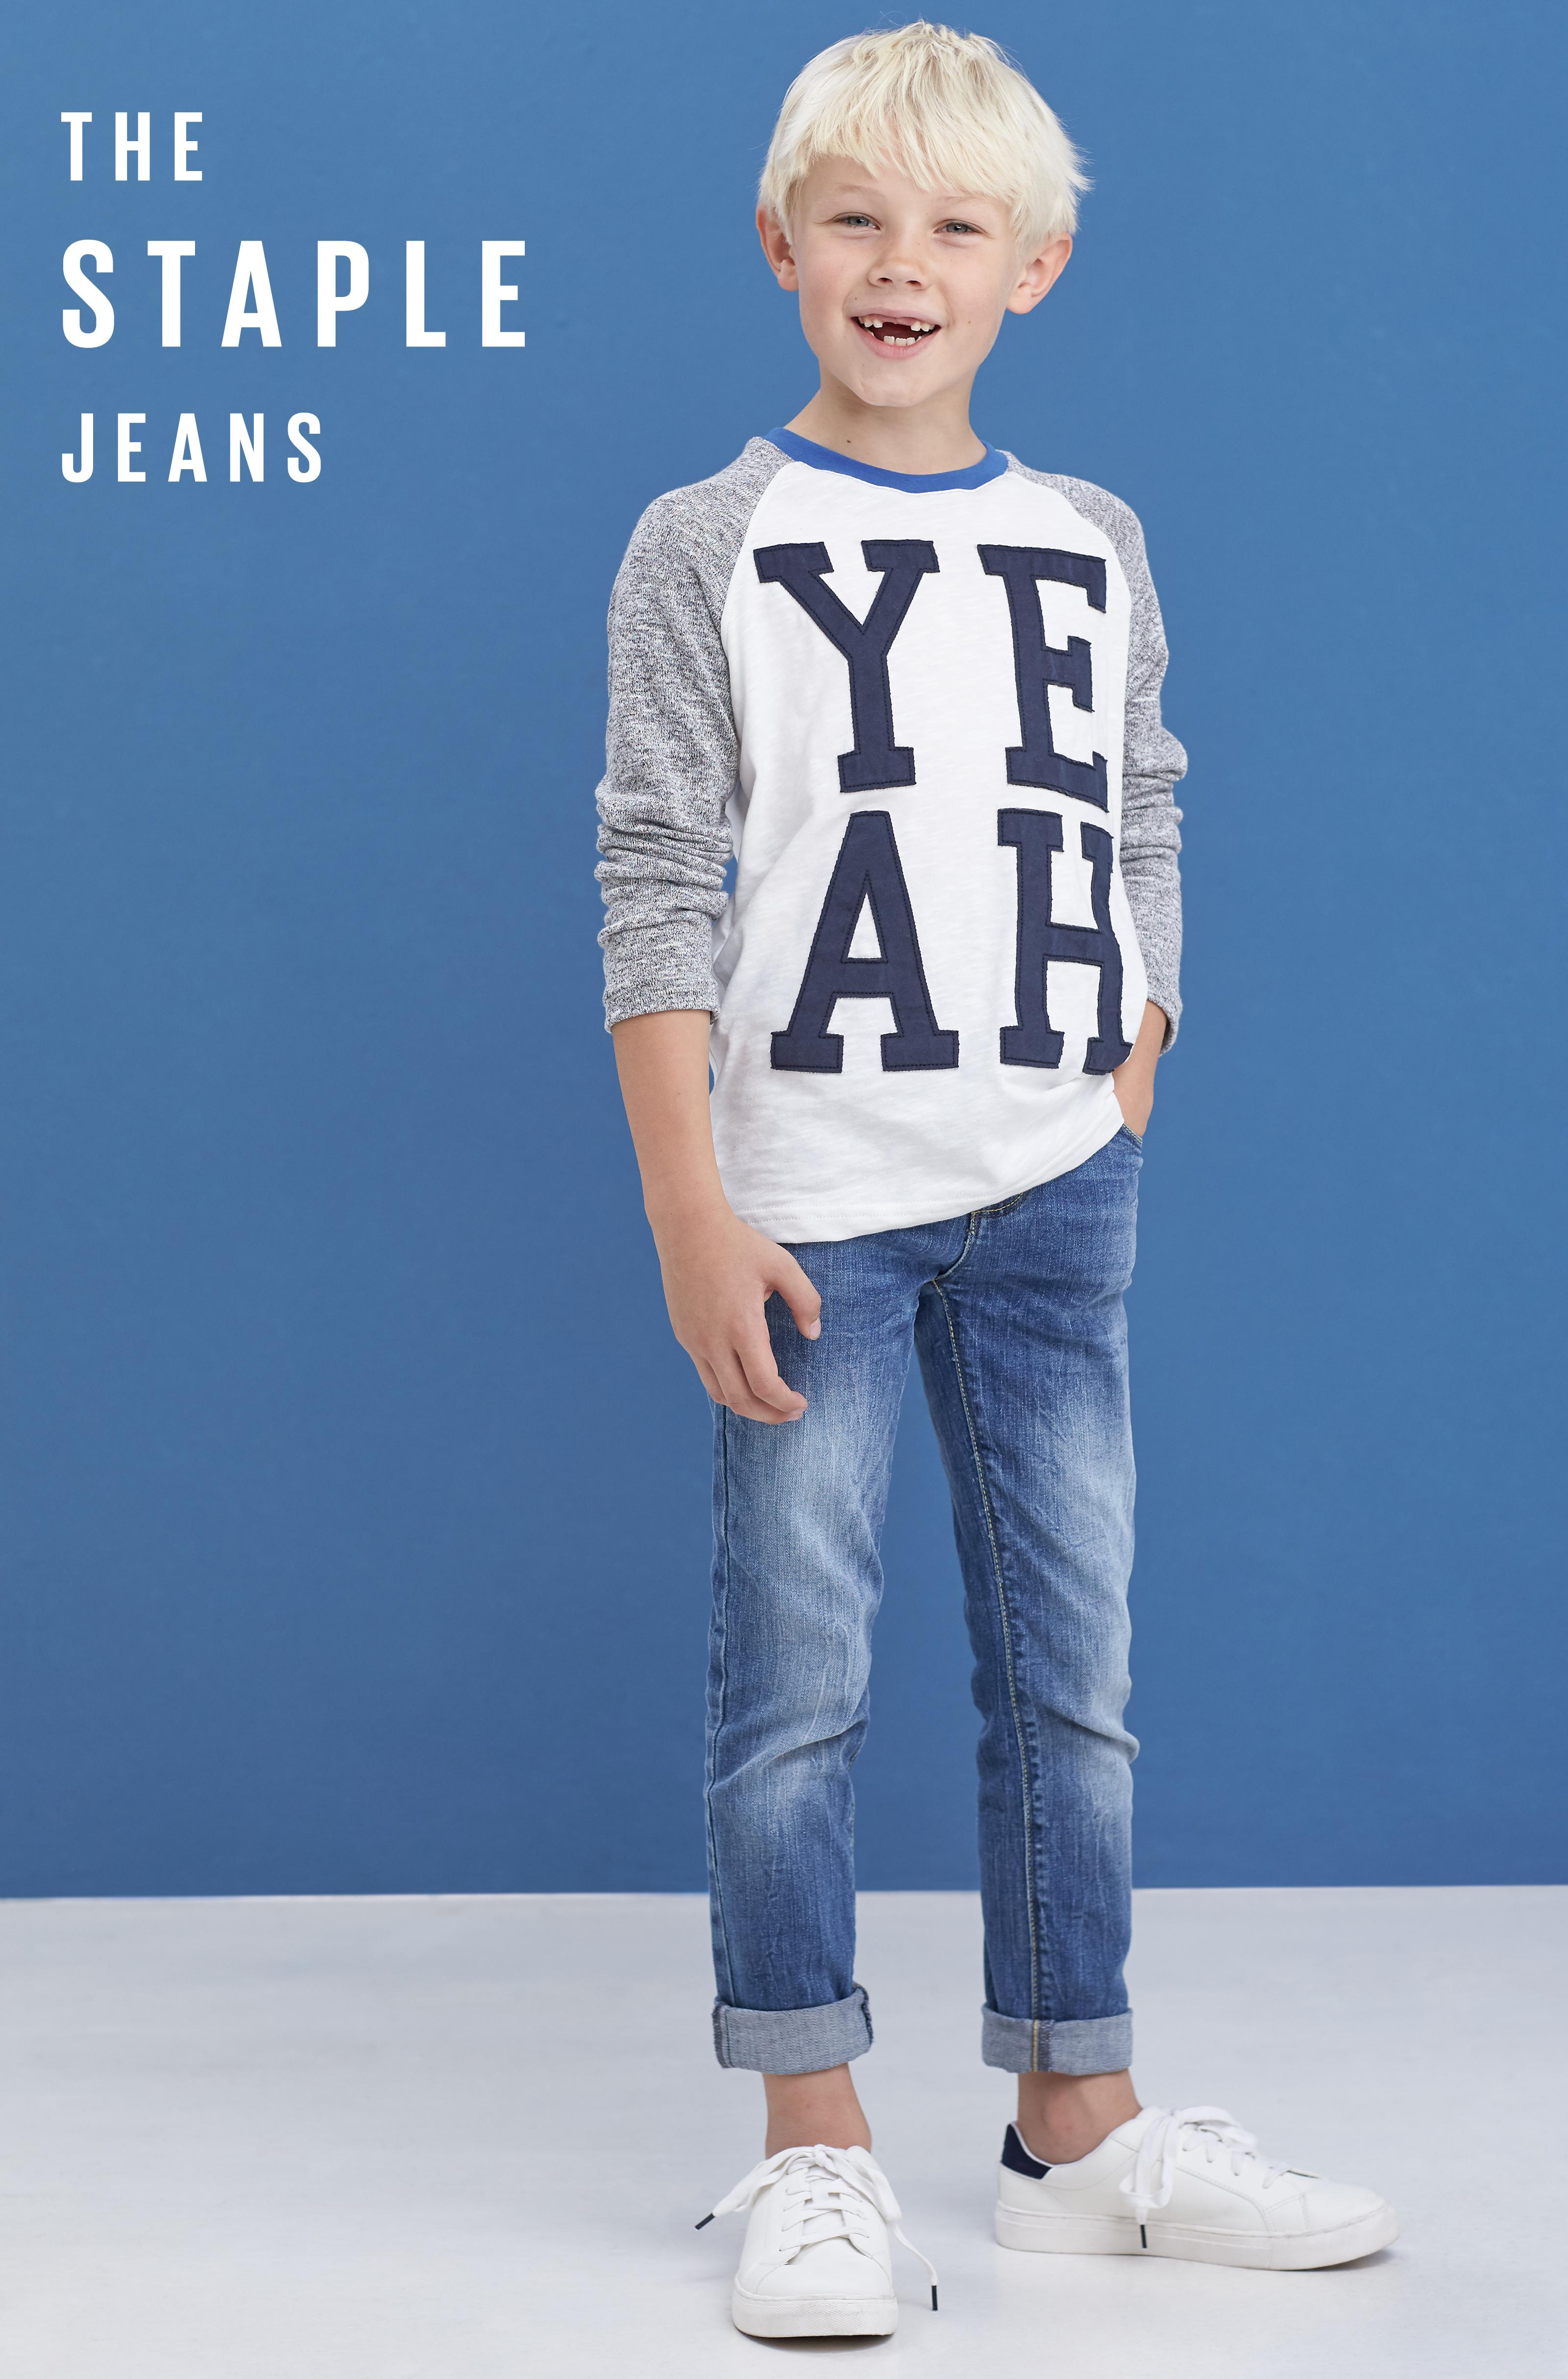 Boy model wearing a yeah graphic long sleeve t-shirt with mid wash denim jeans on a blue background.